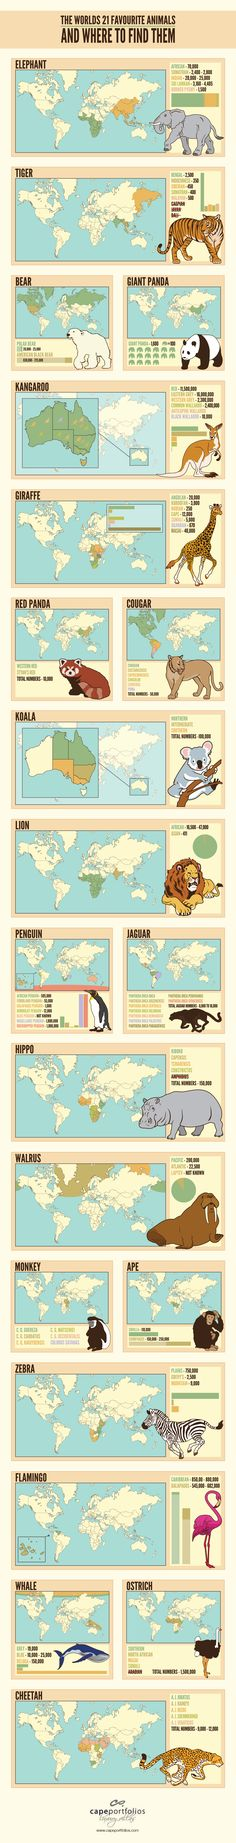 A beautifully designed infographic which explains the roaming habits of the world's favourite animals. It also gives an idea about population declines